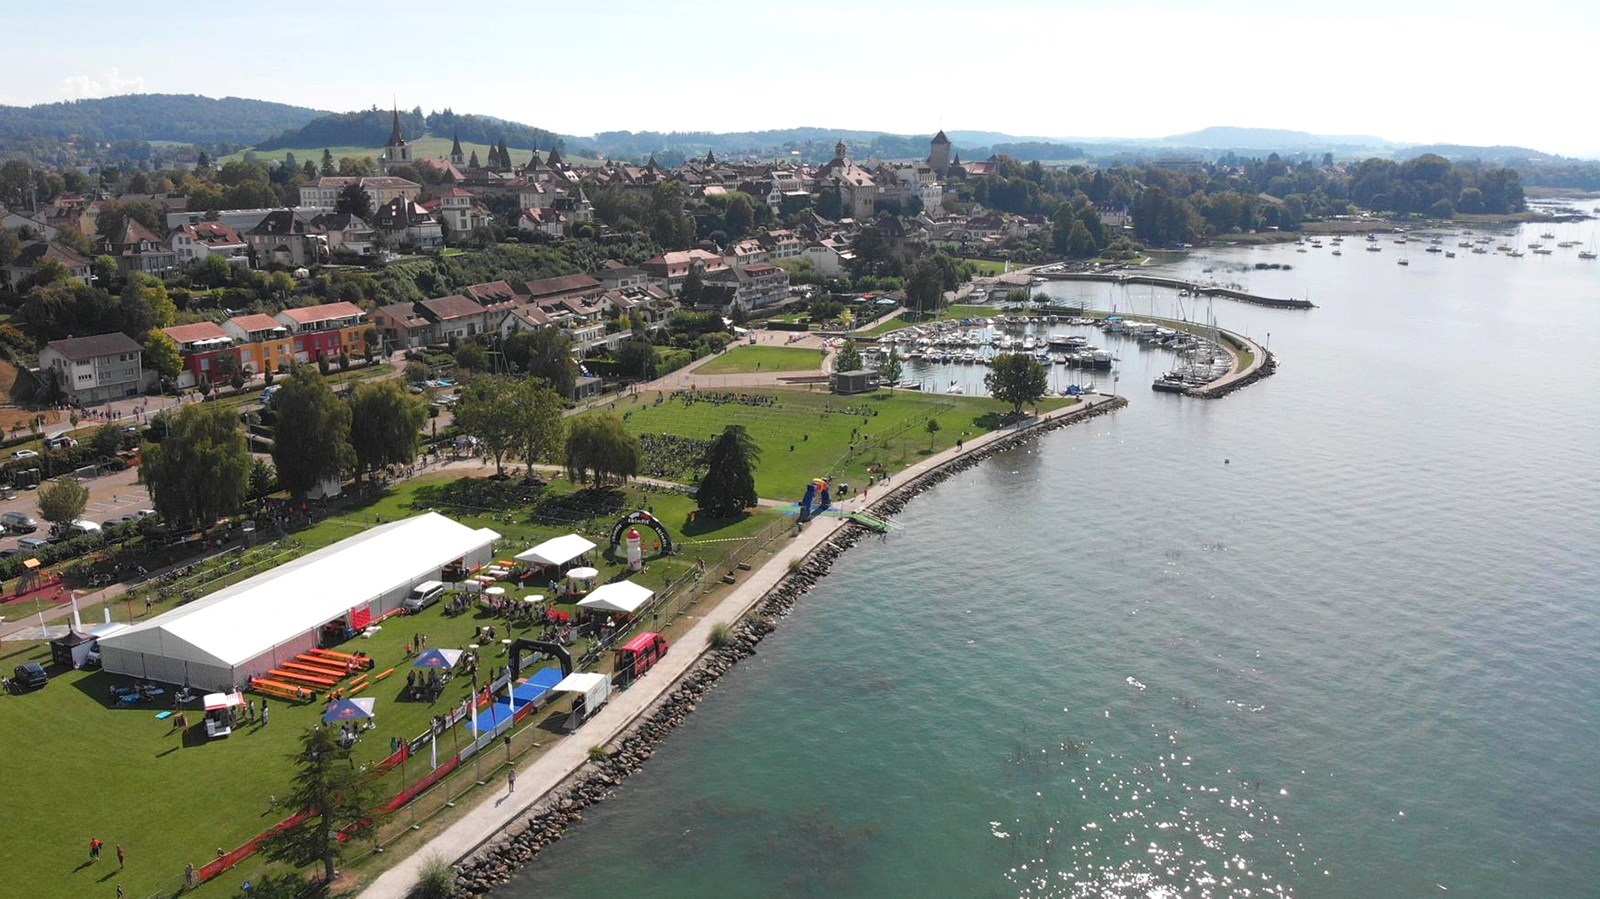 Media: Image_courses/2020/Murten-Tri-photo-1.jpg